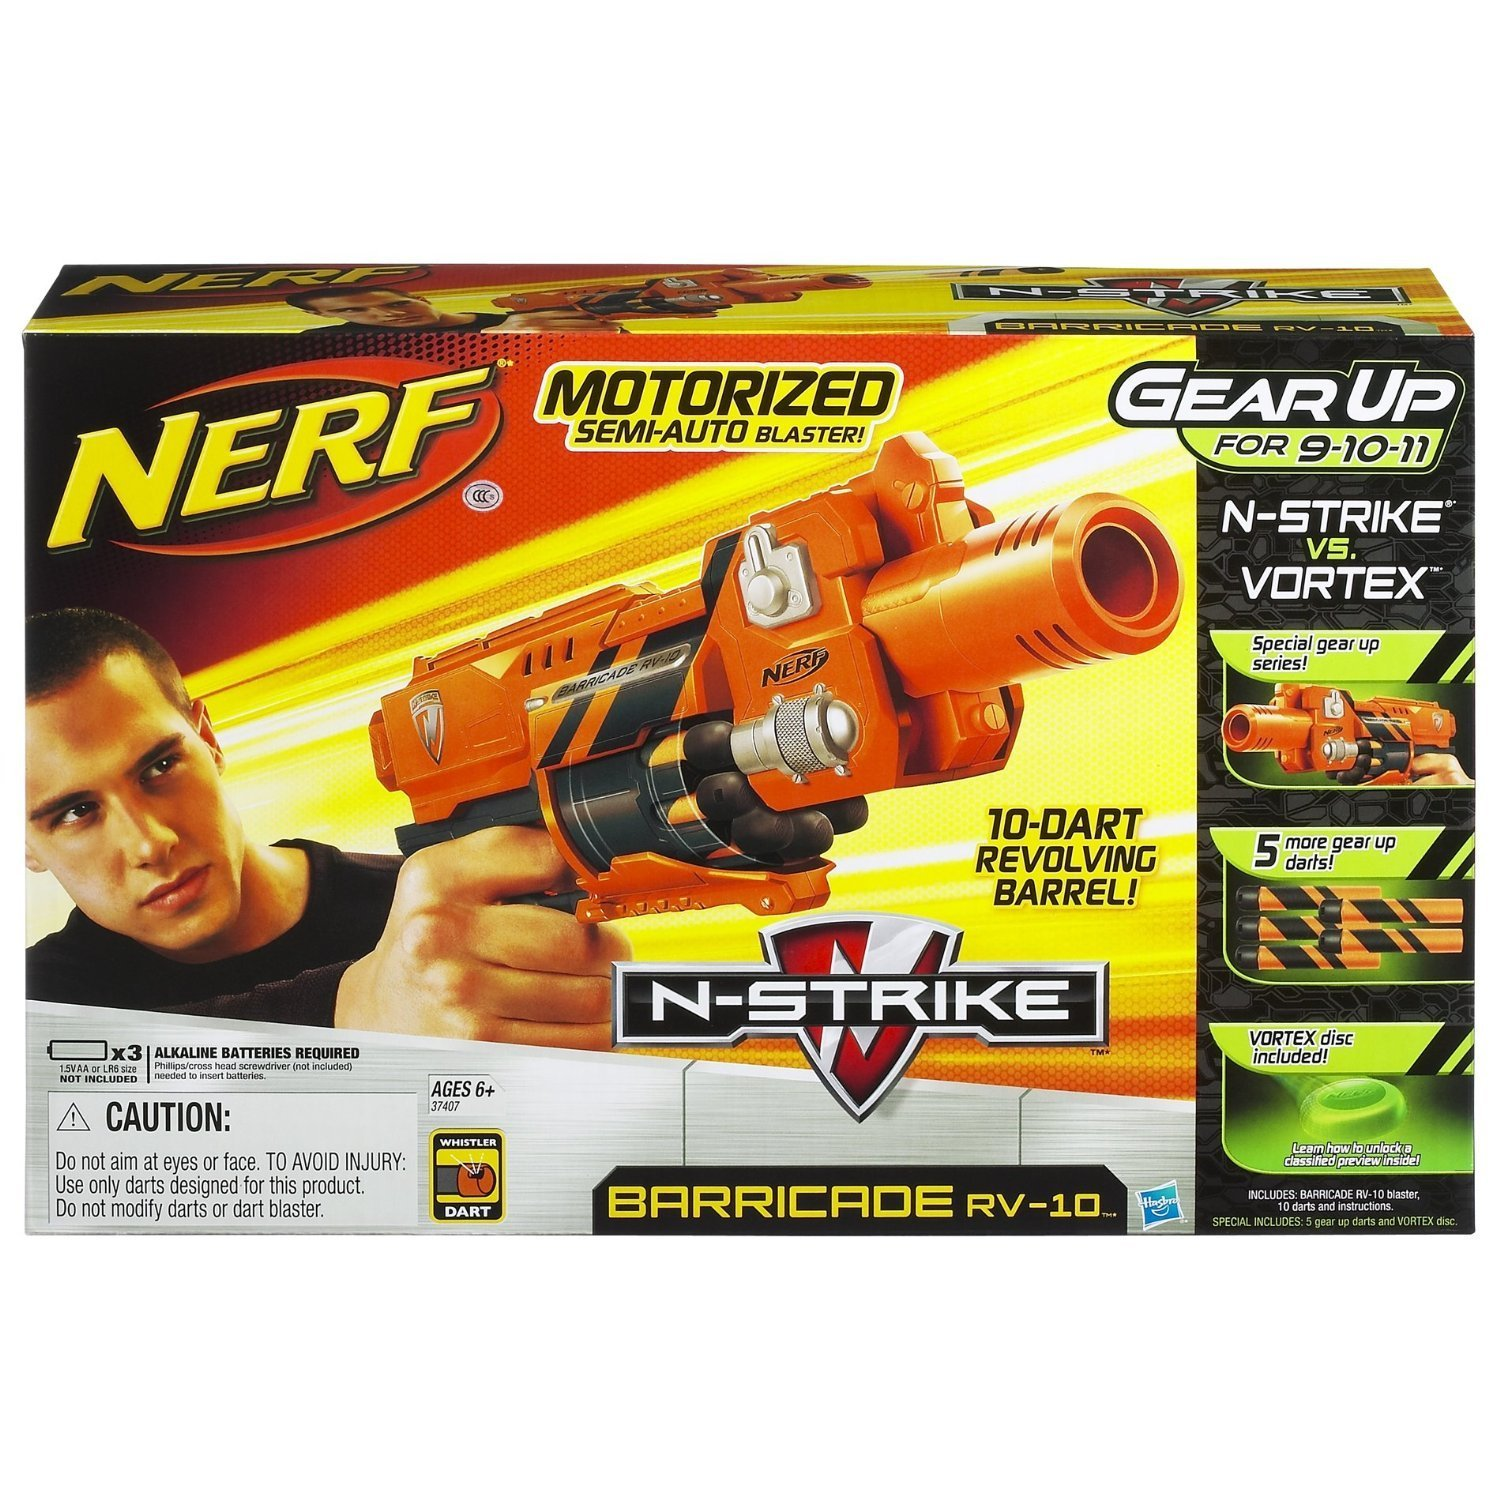 Nerf N-Strike Barricade Gear Up